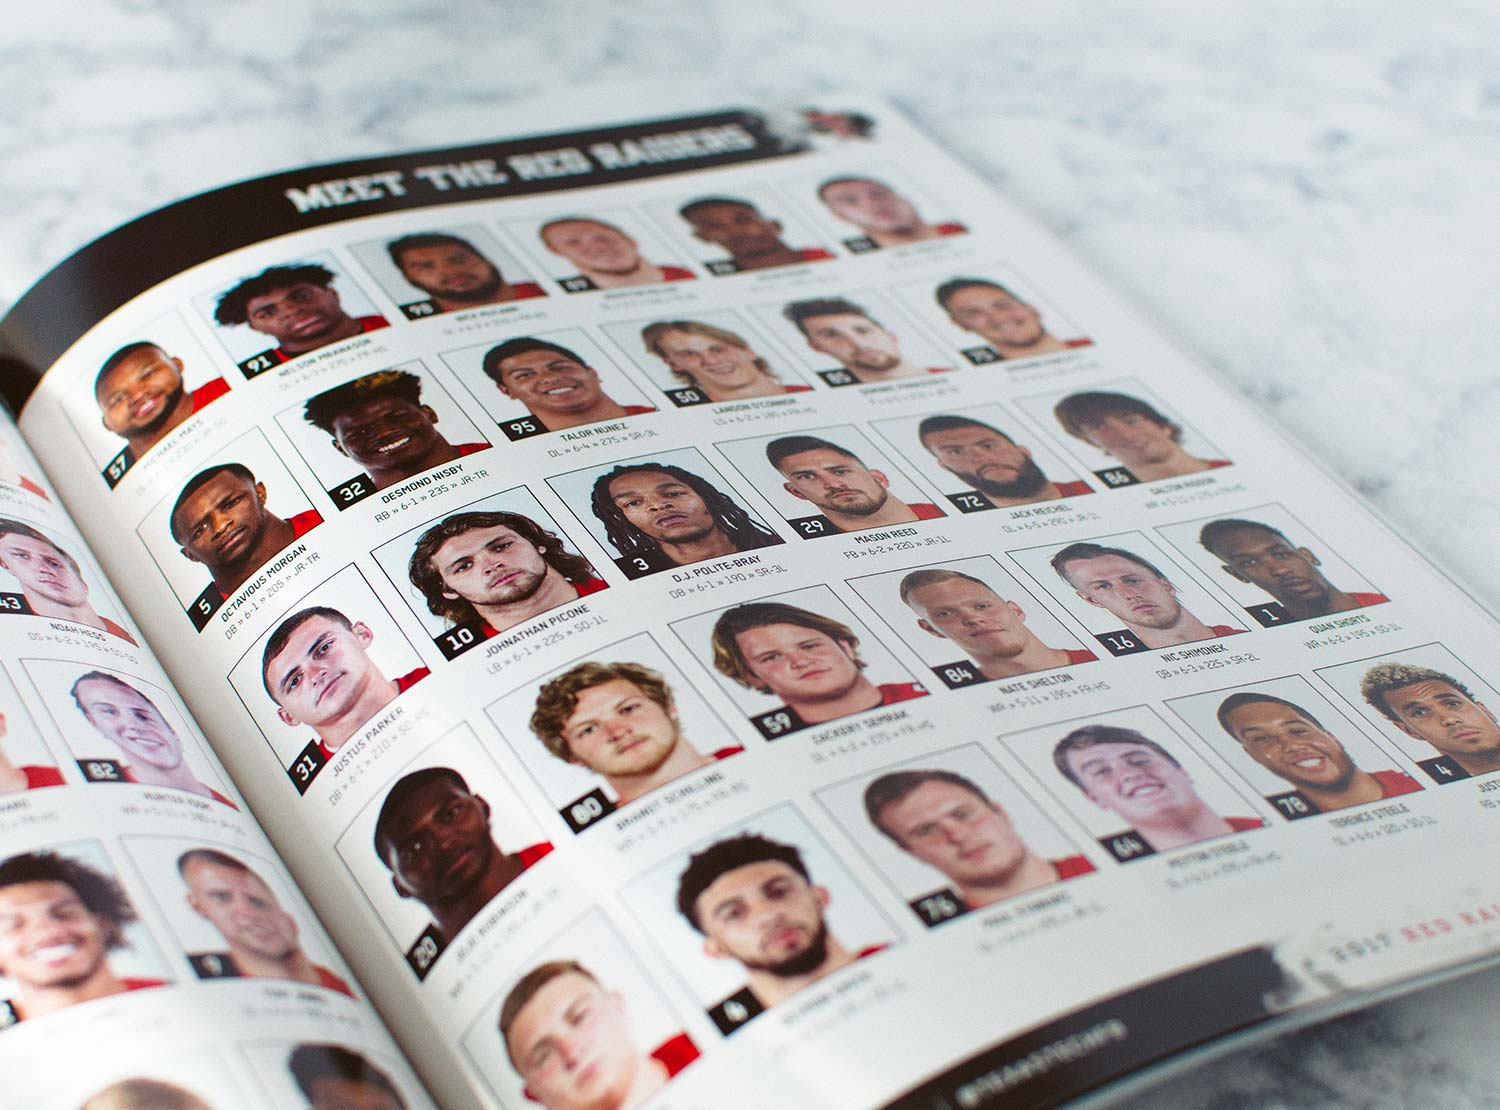 The player headshots spread in the first edition of the 2017-18 Texas Tech Football Program.